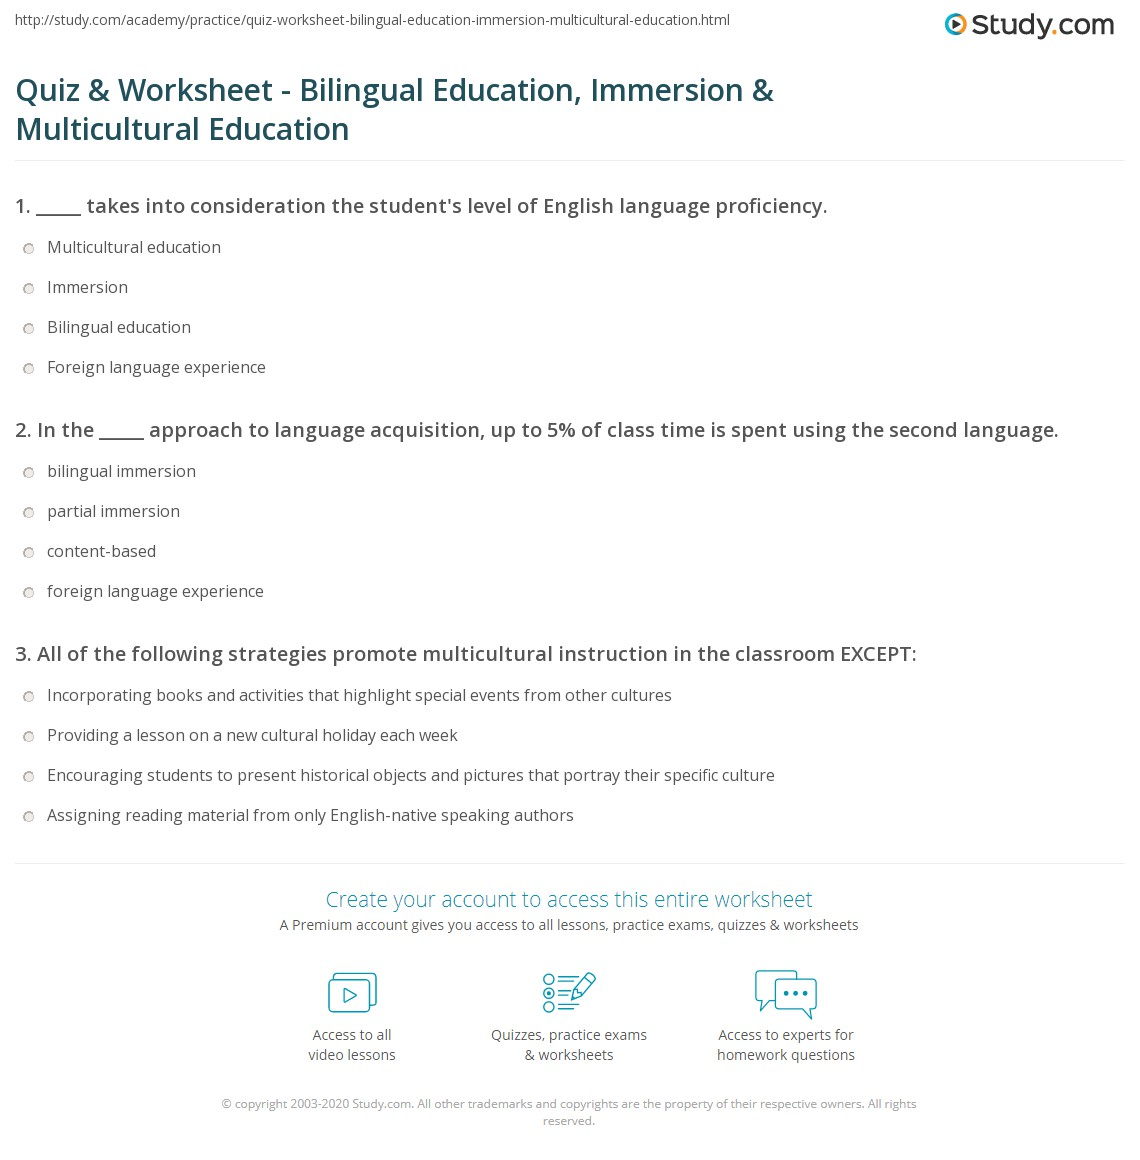 Printables Bilingual Worksheets Mywcct Thousands Of